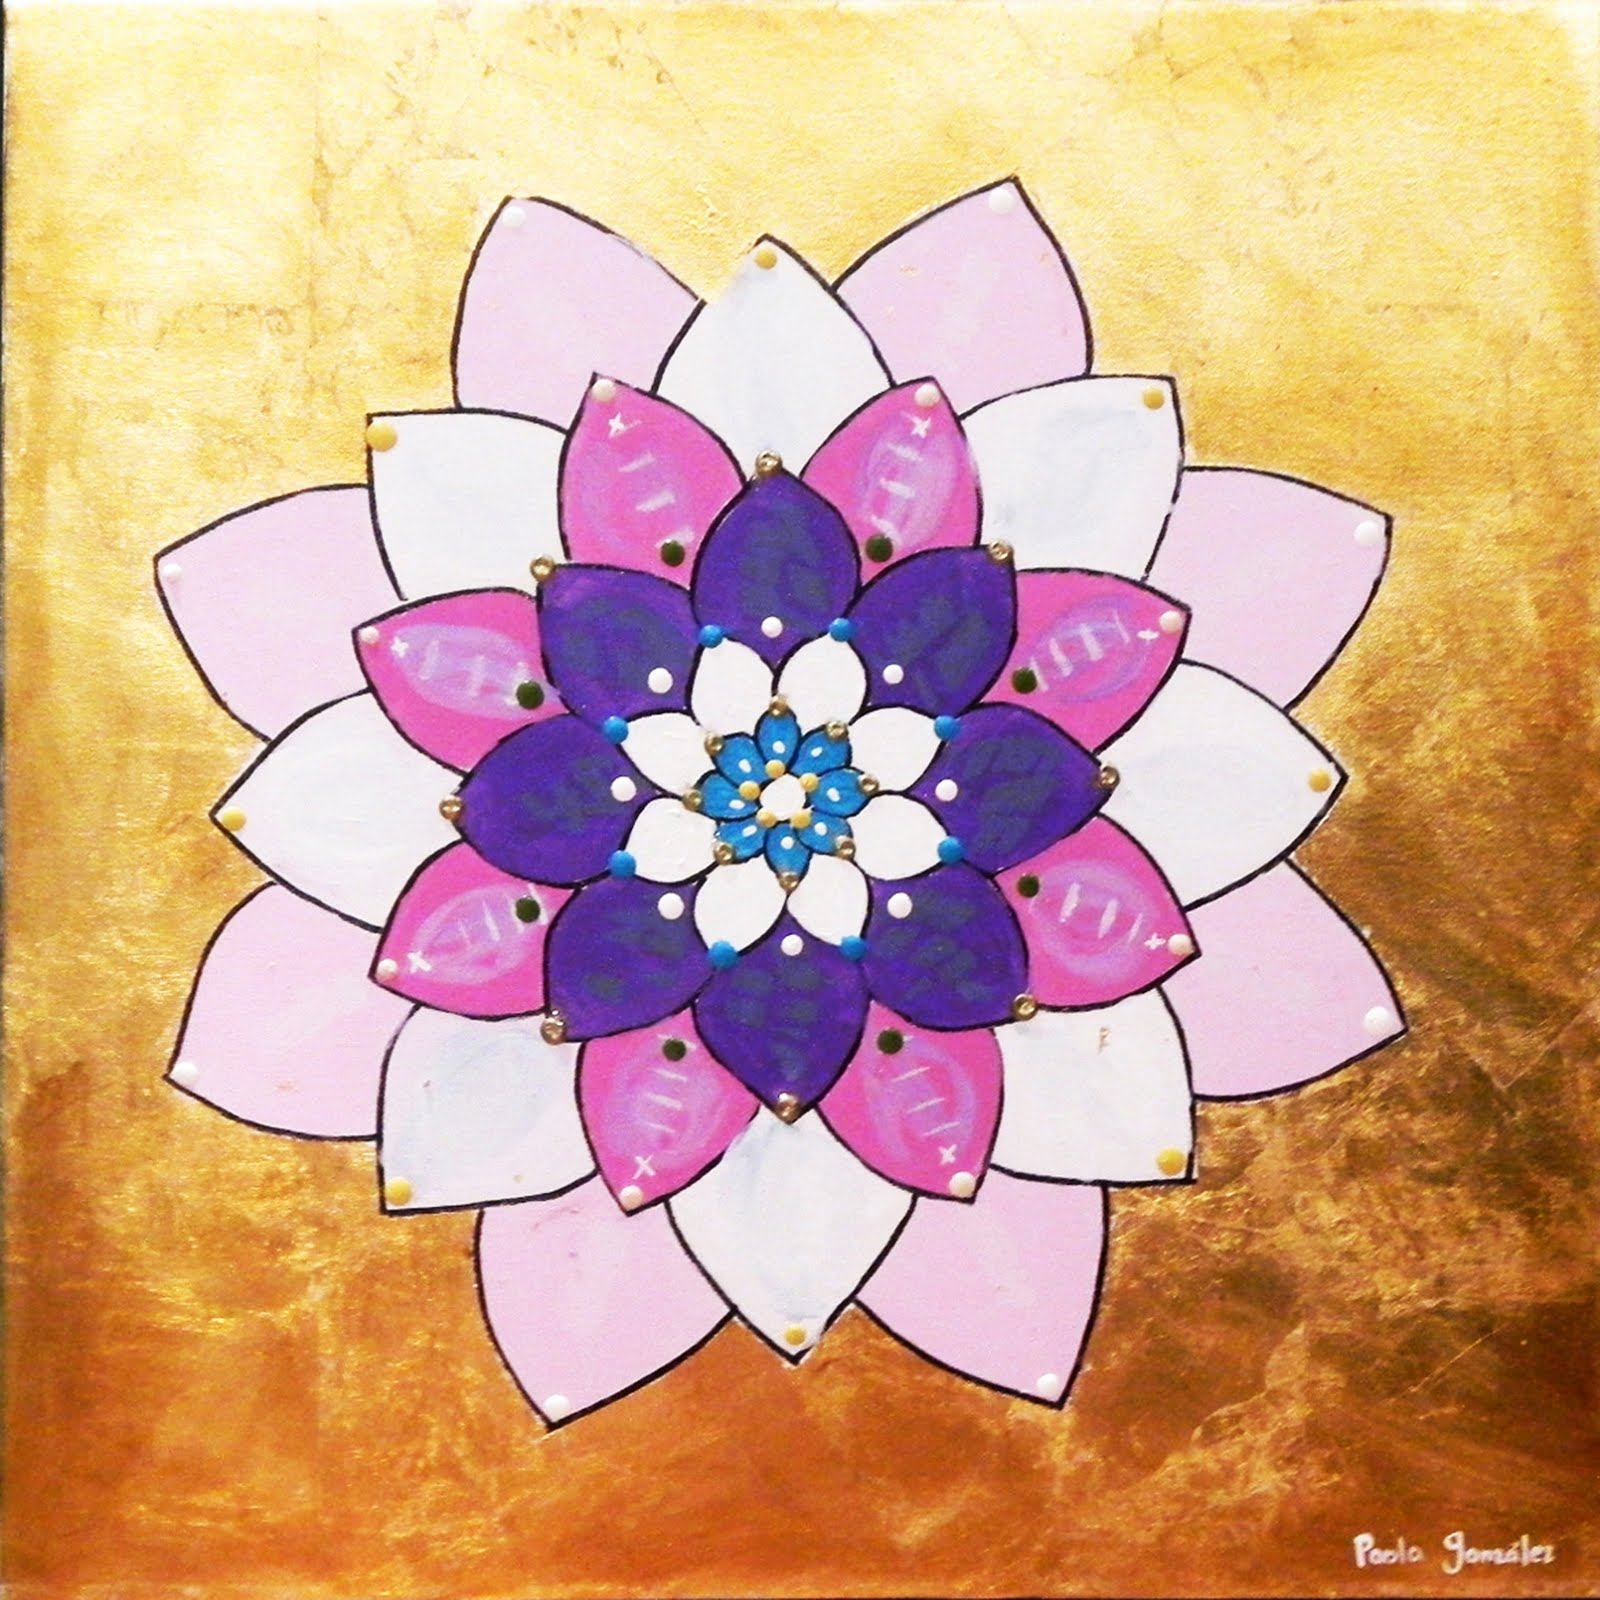 Paola gonzalez contemporary art lotus flower buddhism lotus flower buddhism mightylinksfo